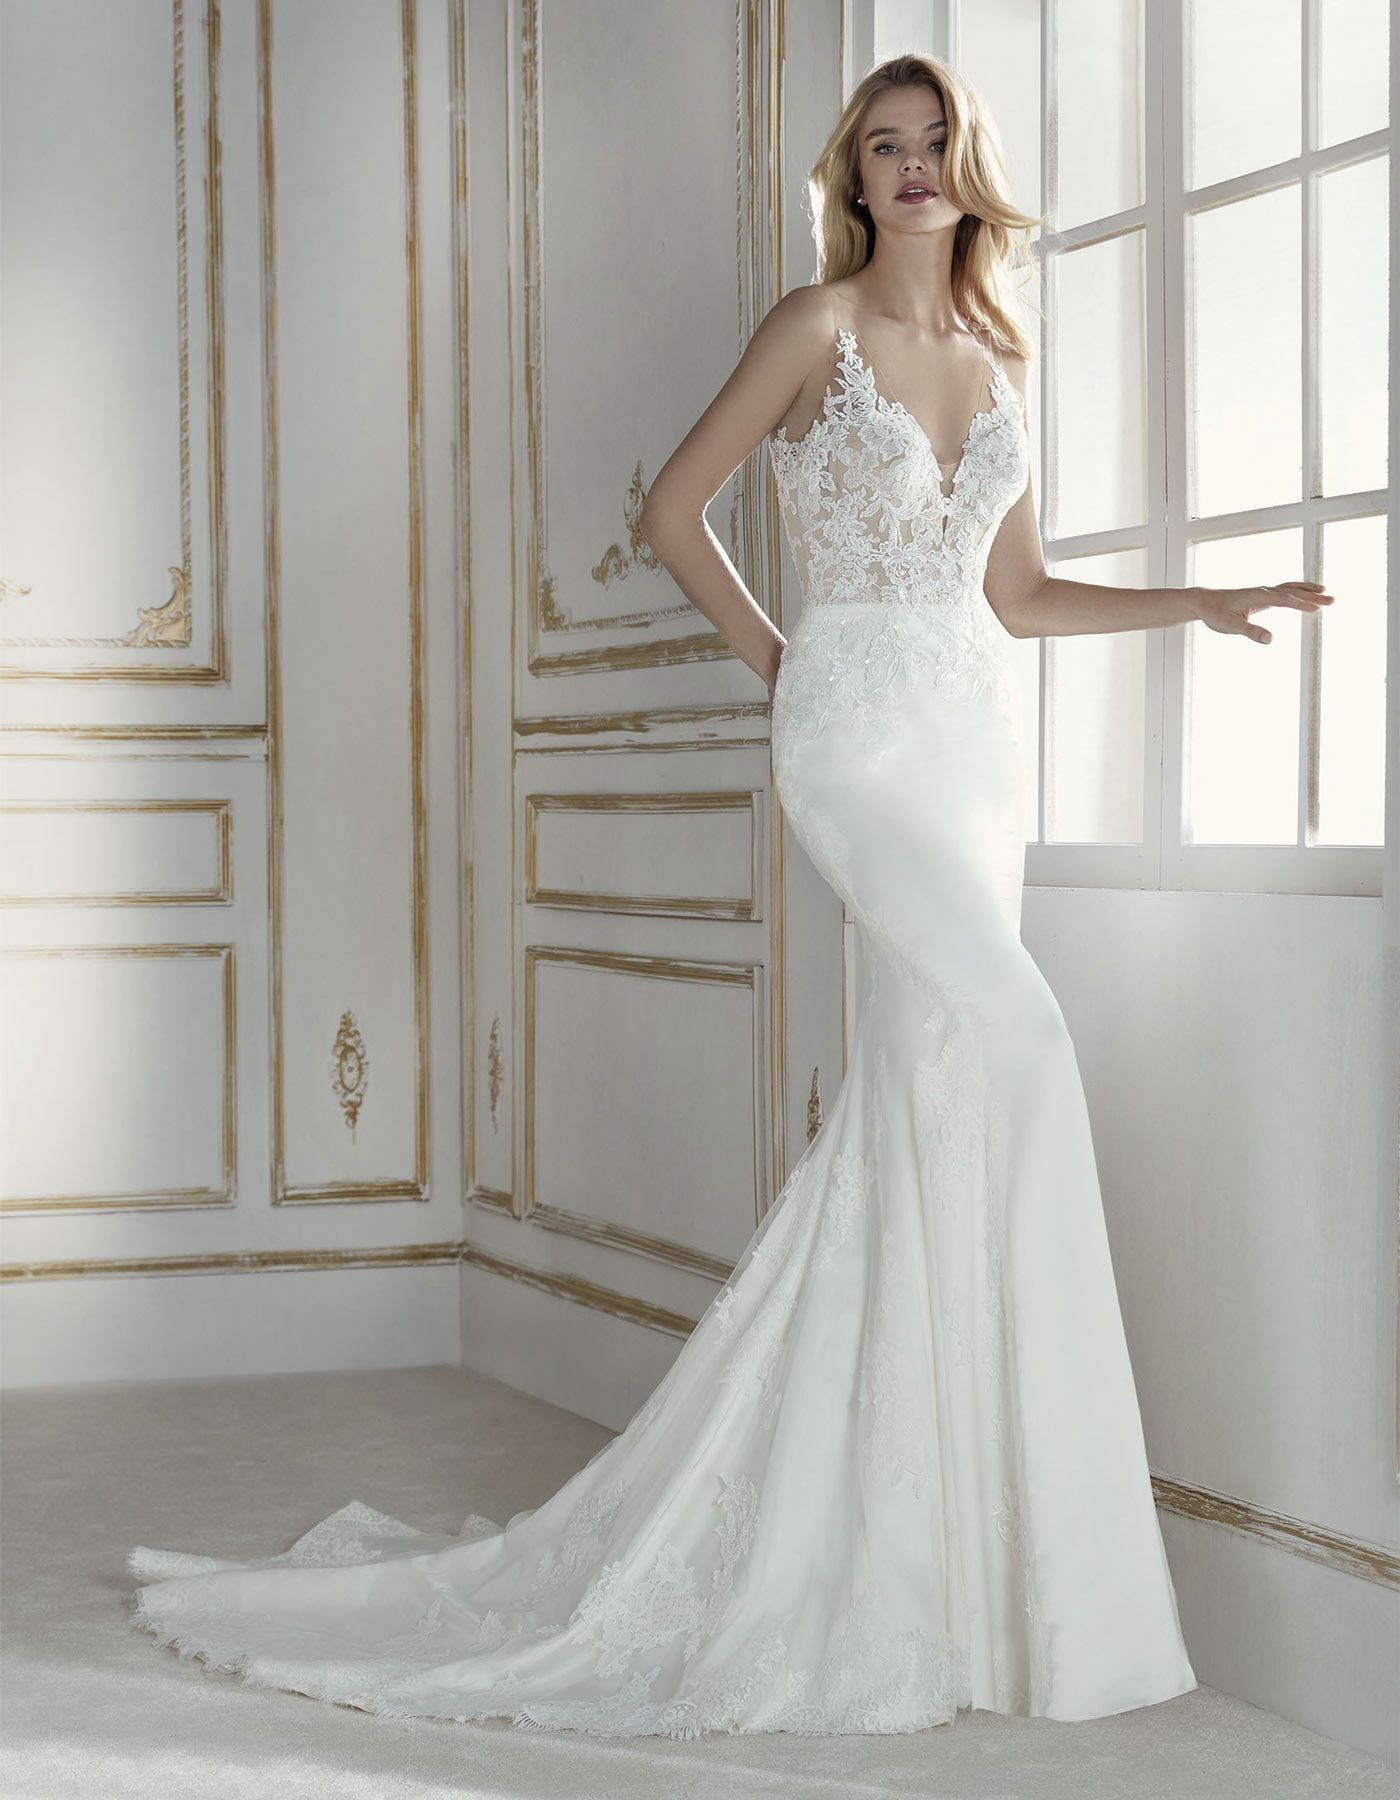 b3572ca33c4f Pandora by La Sposa Sensuality in dress form. A low-waist mermaid dress in  soft satin